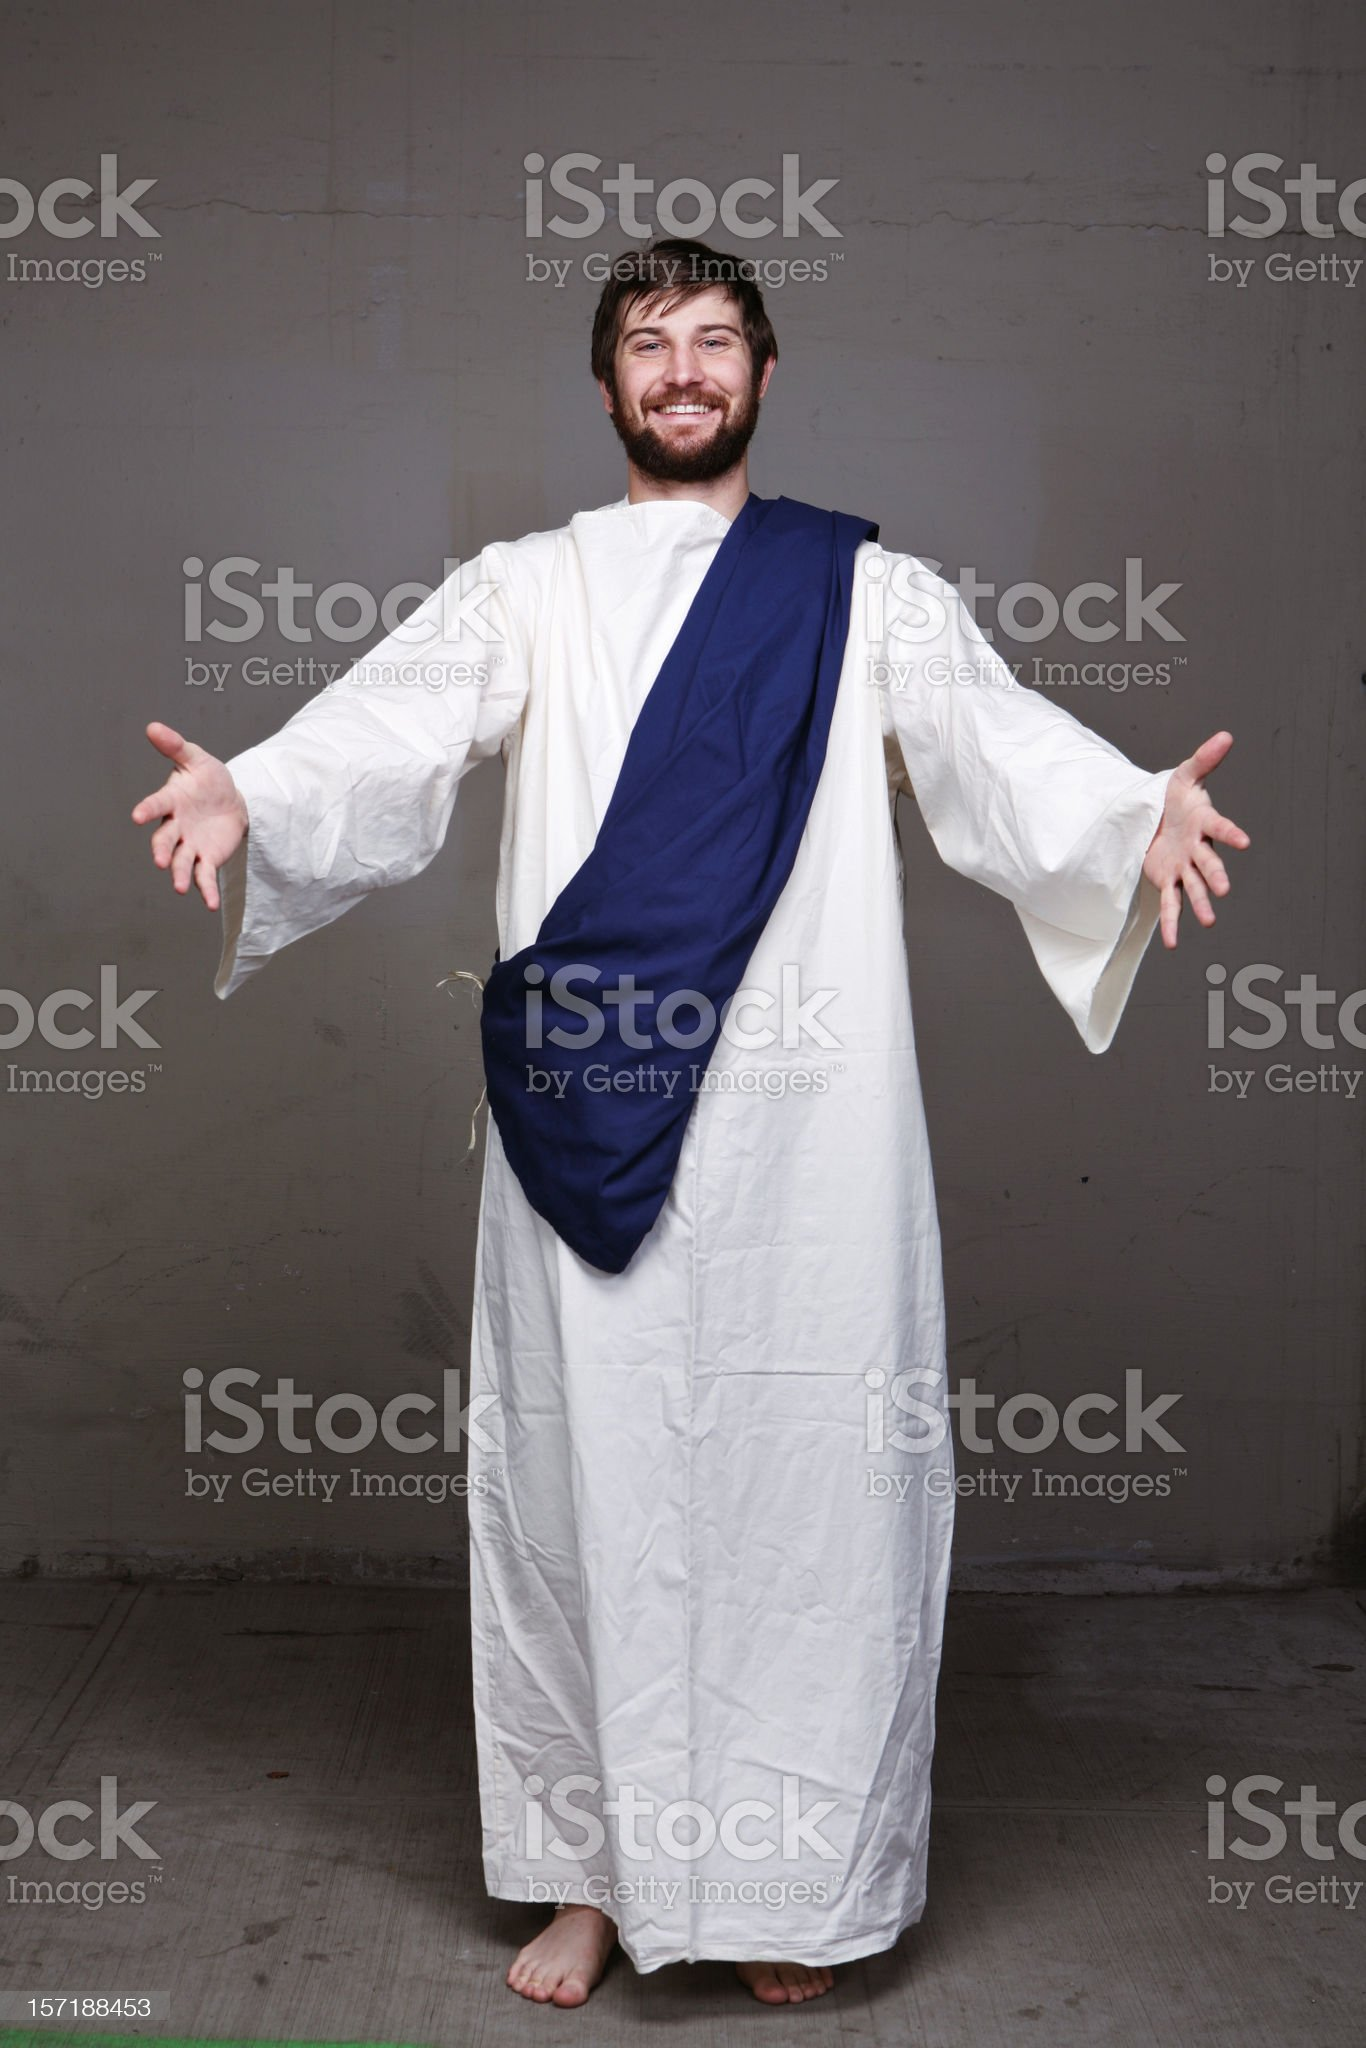 Bible Guy Holding Hands Out and Smiling royalty-free stock photo